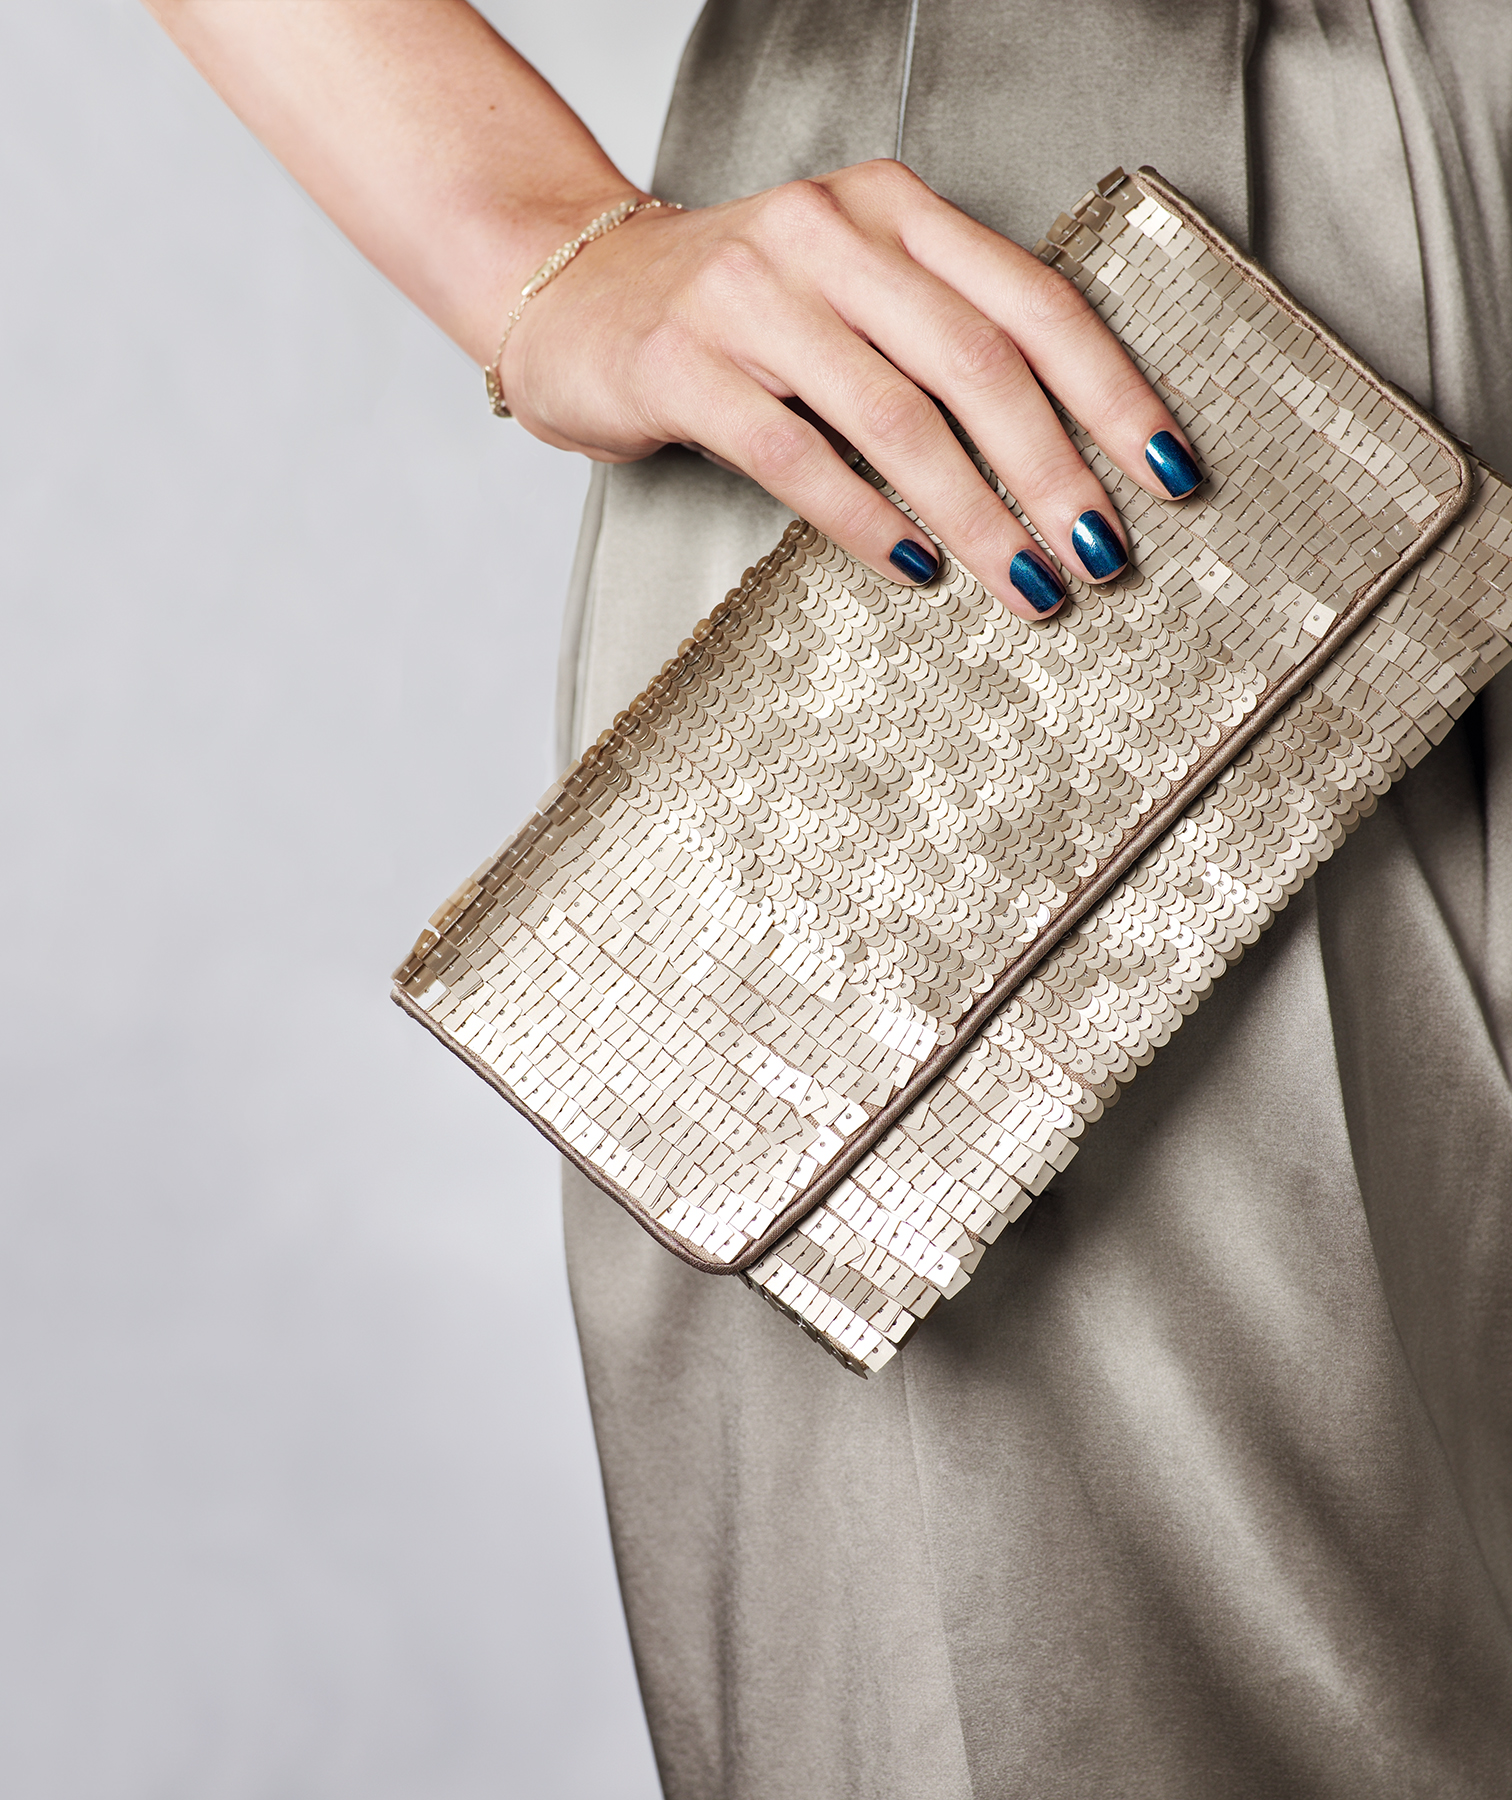 Woman with a dark blue manicure holding a clutch